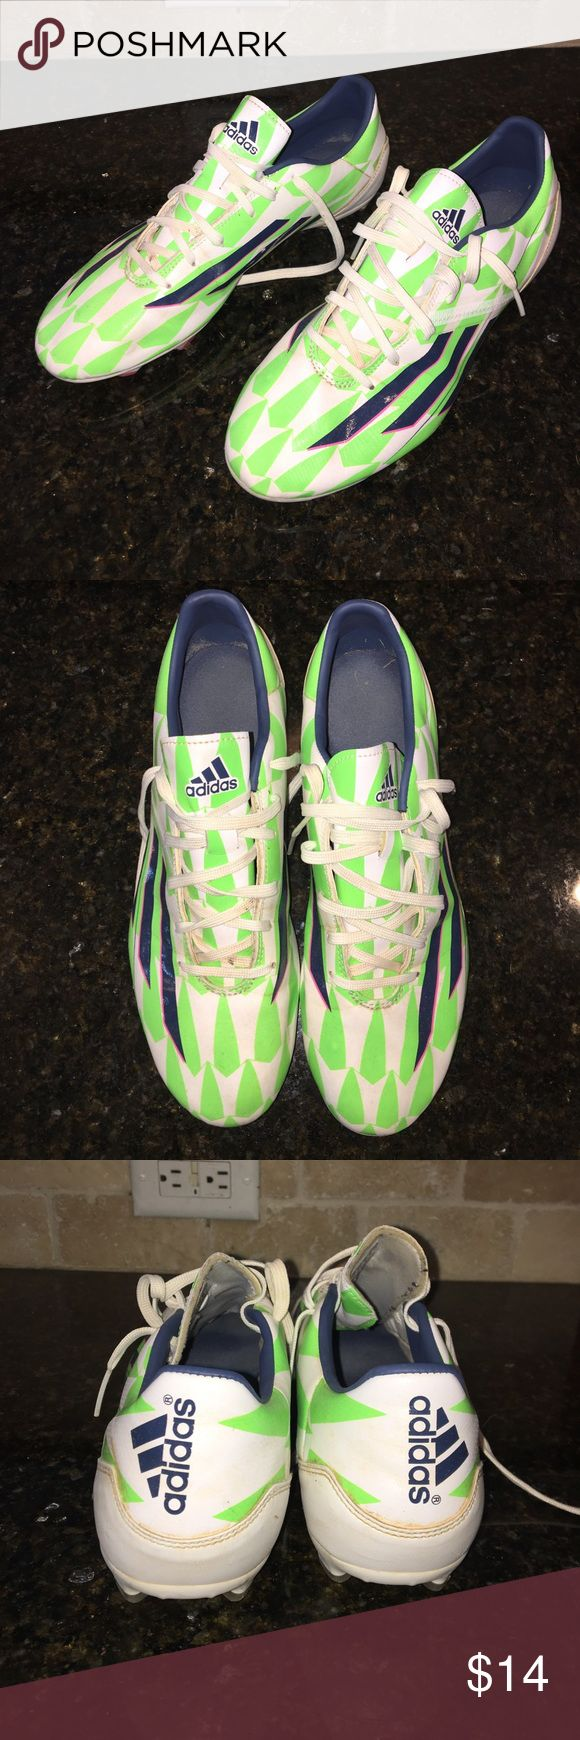 Adidas f10 soccer cleats men's 10 Adidas f10 soccer cleats men's 10 adidas Shoes Athletic Shoes